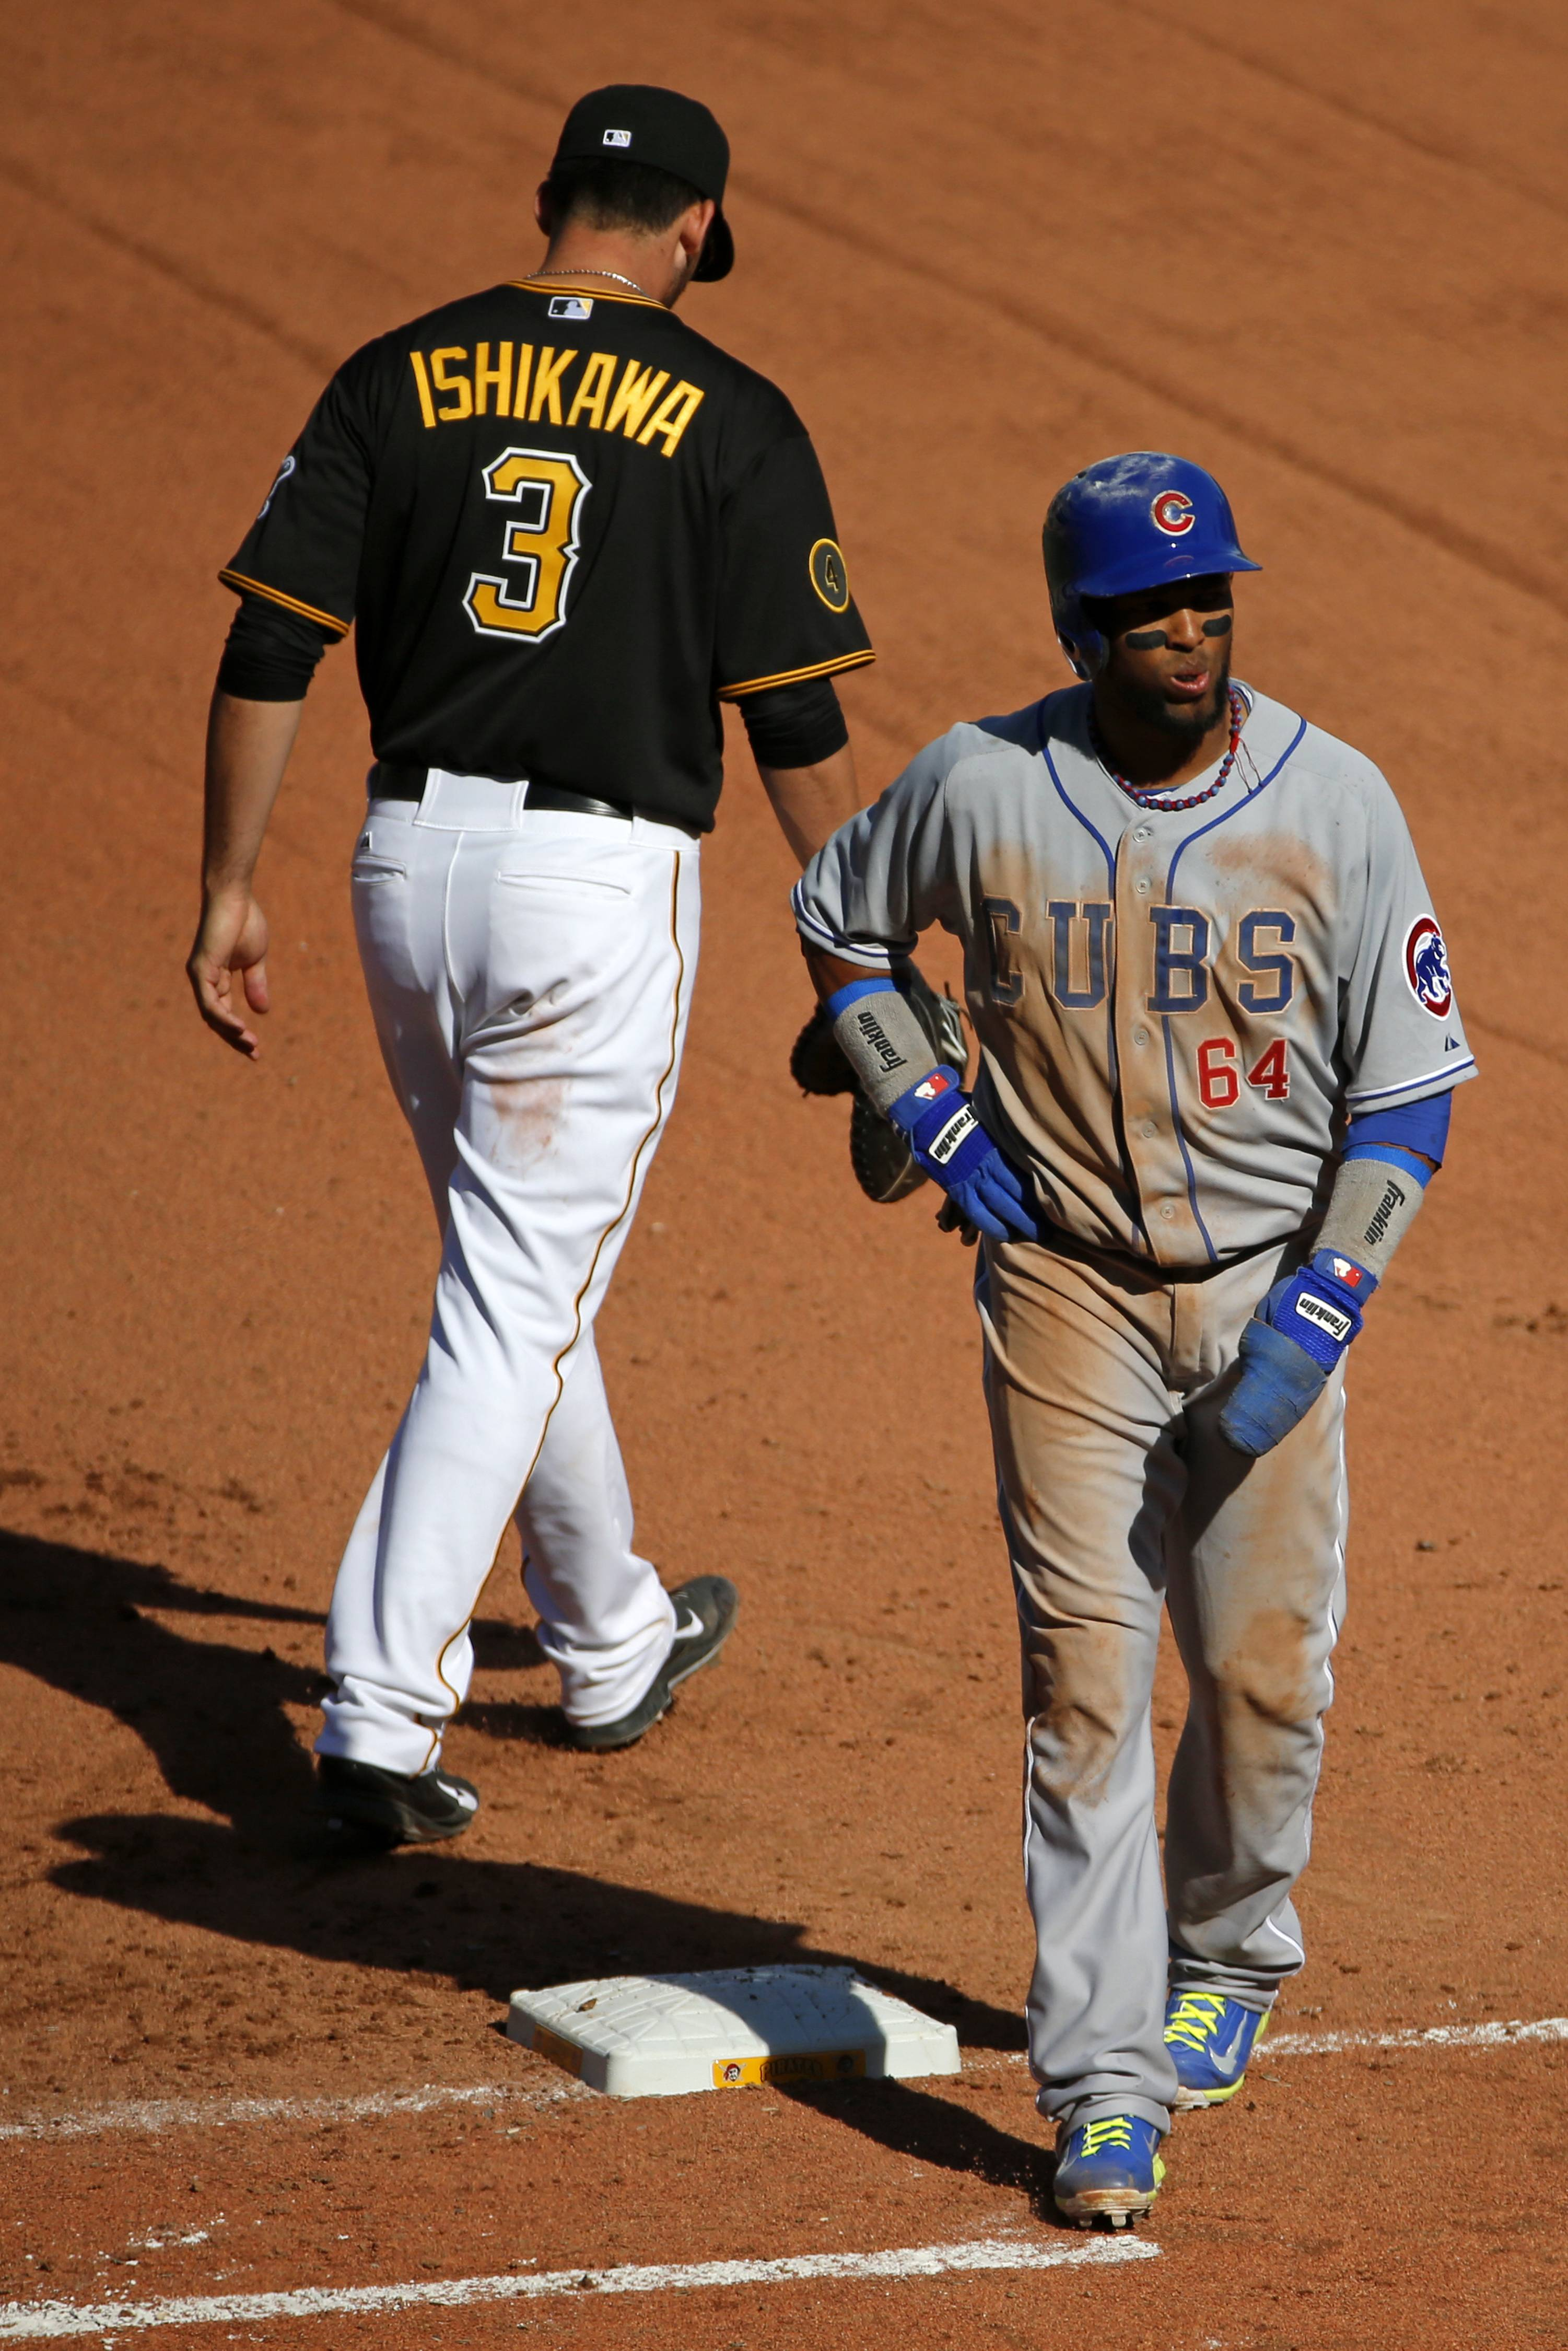 The Cubs' Emilio Bonifacio walks off first base after being ruled out by home plate umpire John Hirschbeck as the result of review requested by Pittsburgh Pirates manager Clint Hurdle.